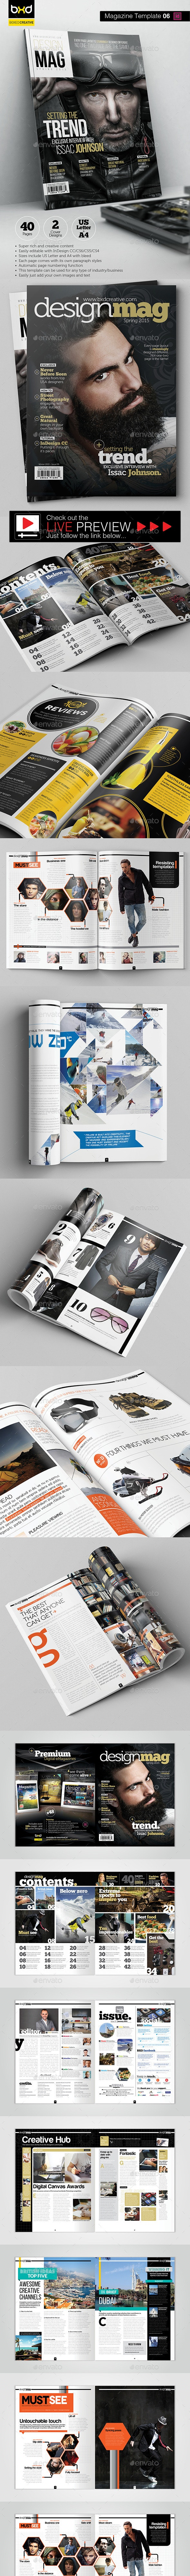 Magazine Template - InDesign 40 Page Layout V6 - Magazines Print Templates